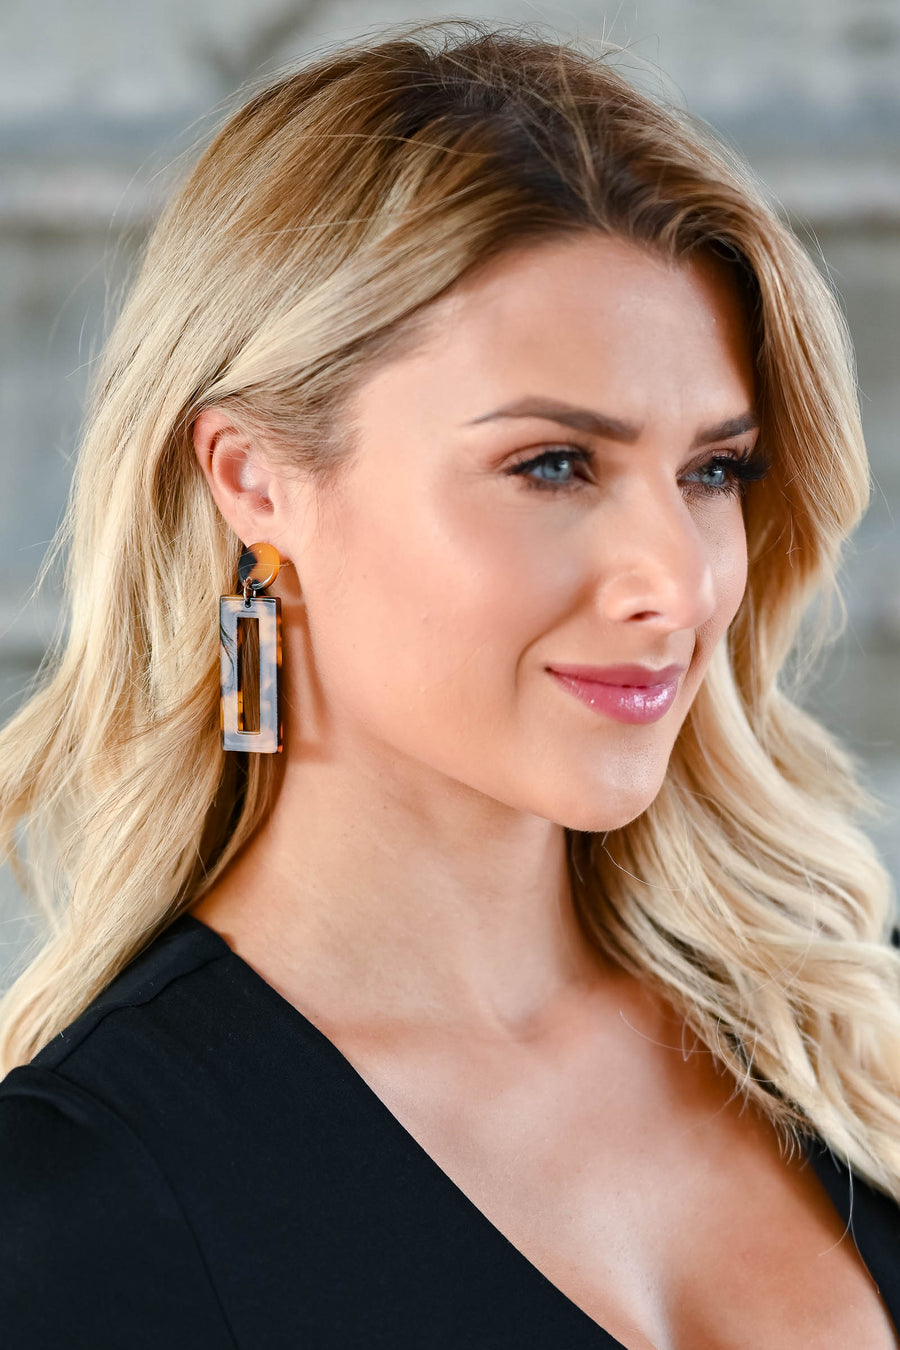 On The Scene Earrings - Tortoise Tortoise rectangle drop earrings with push-back closure closet candy front